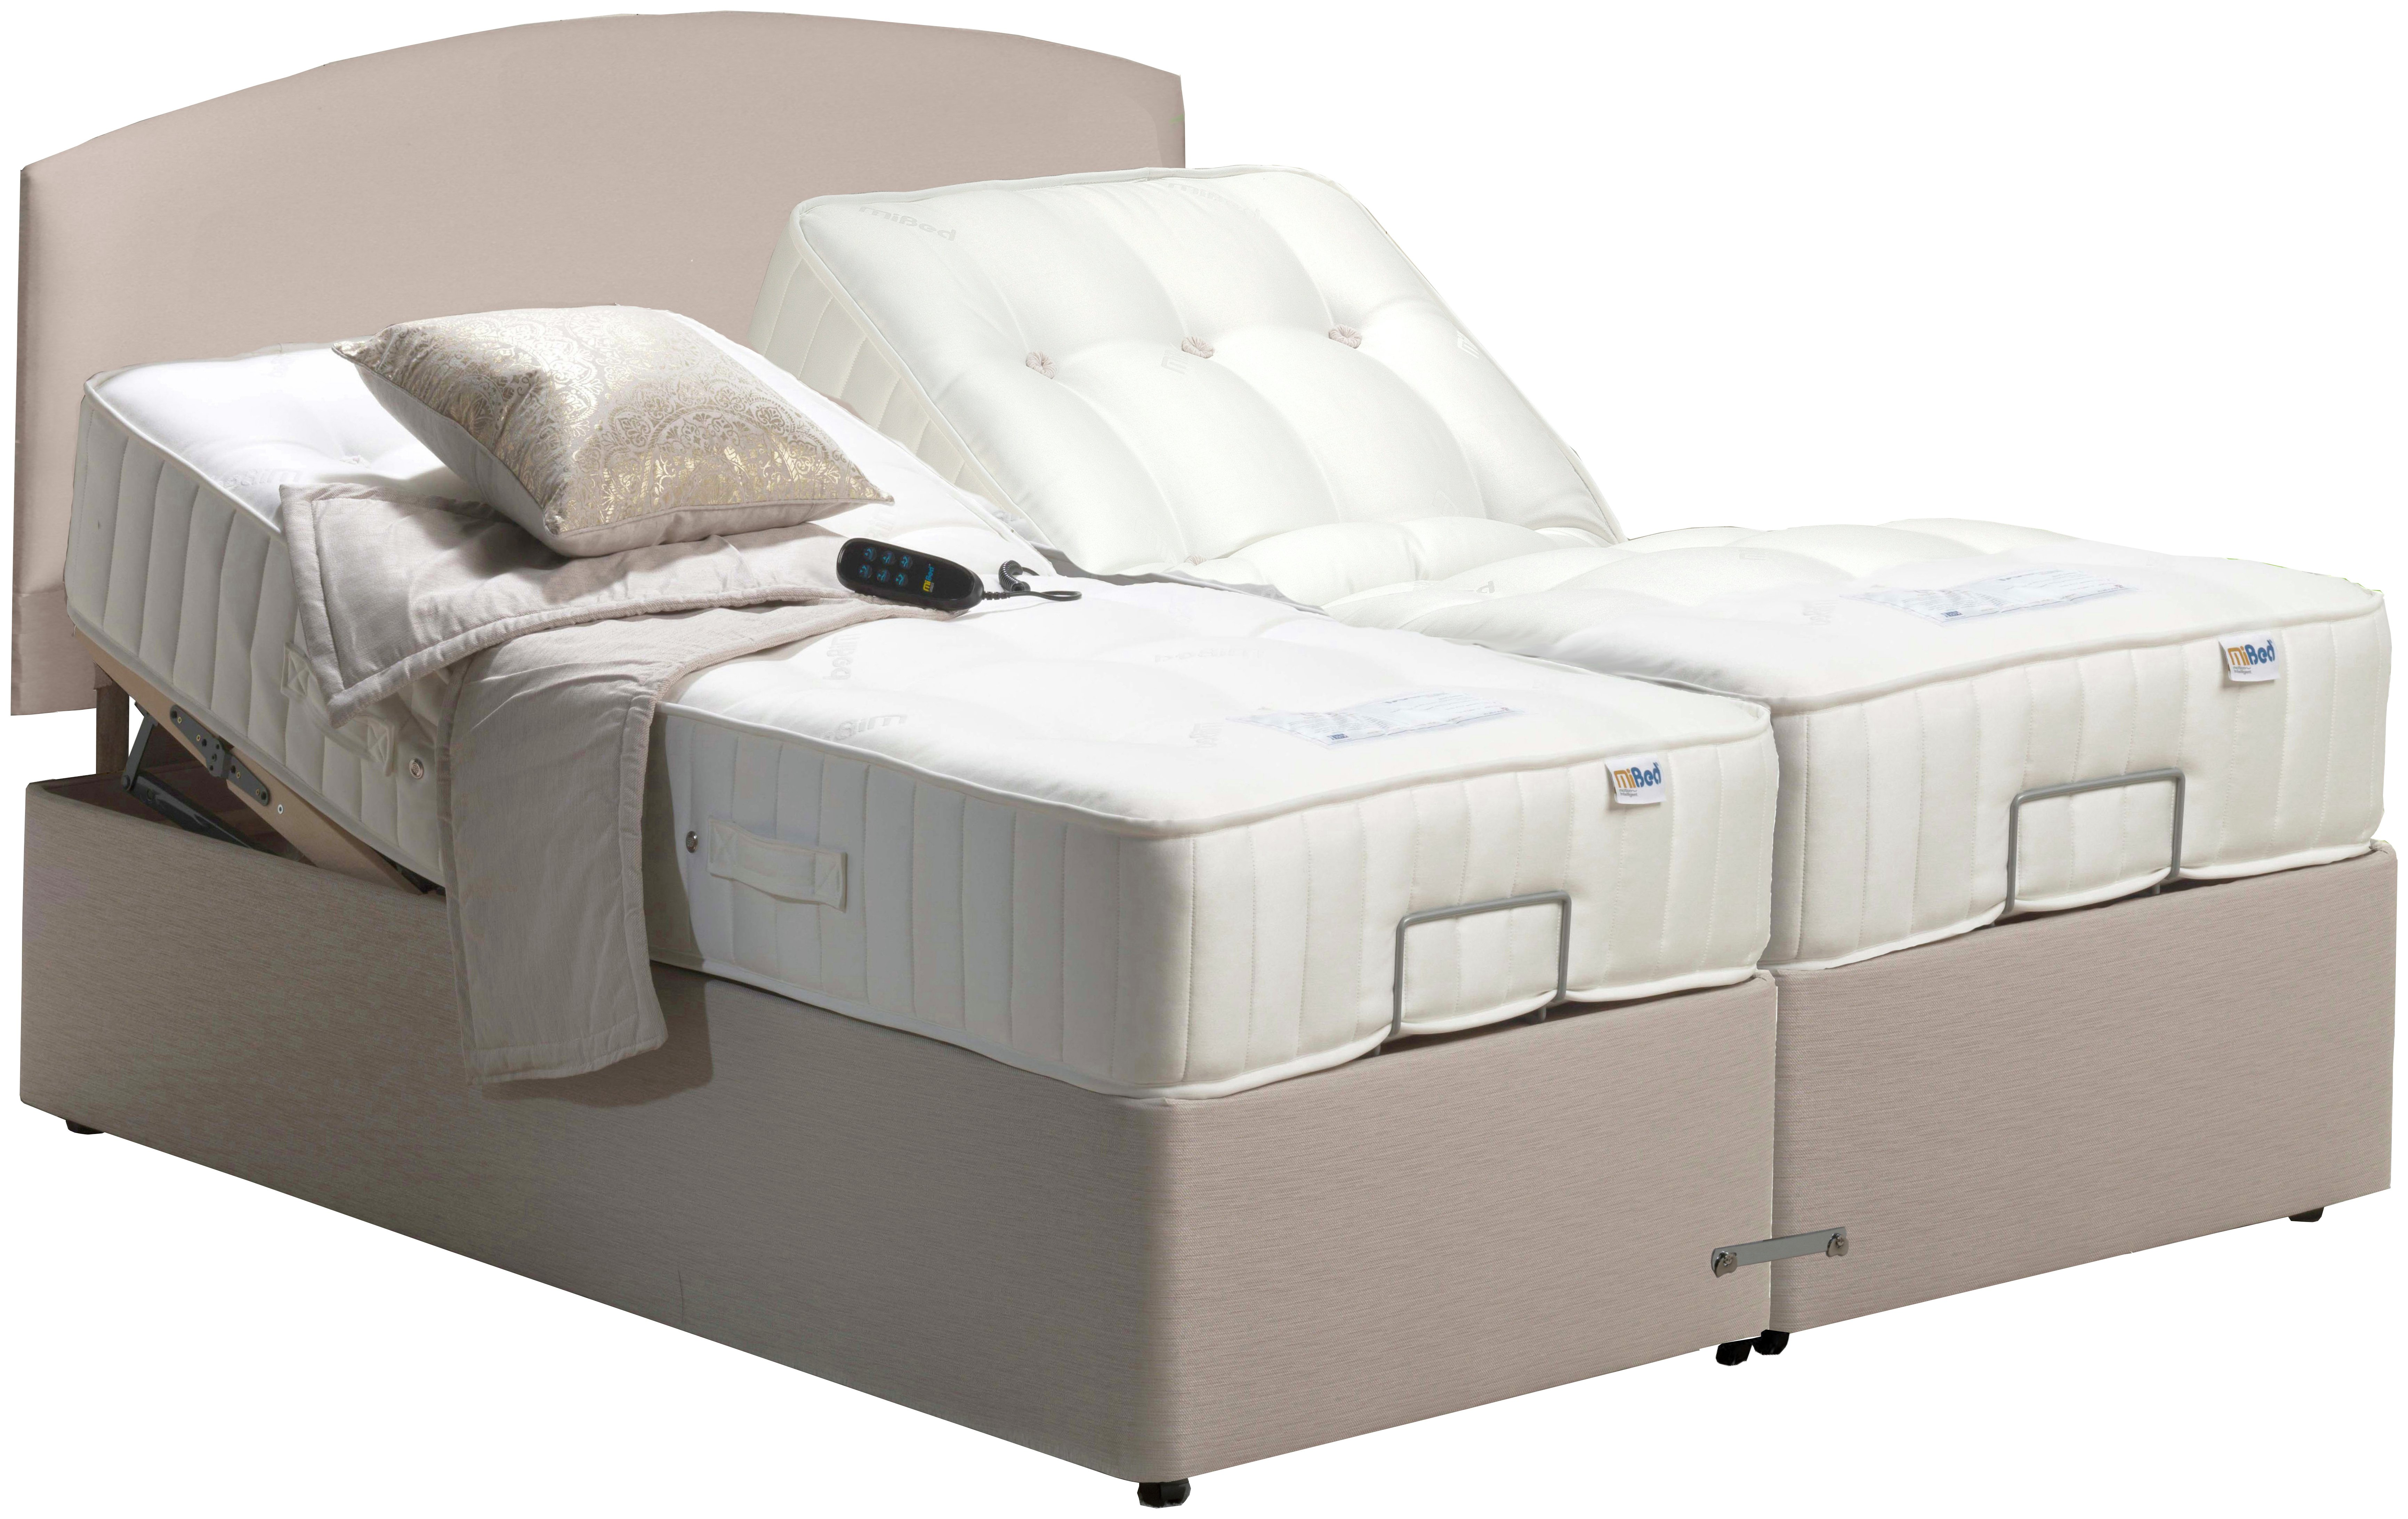 MiBed Adjustable Newquay King Bed. at Argos